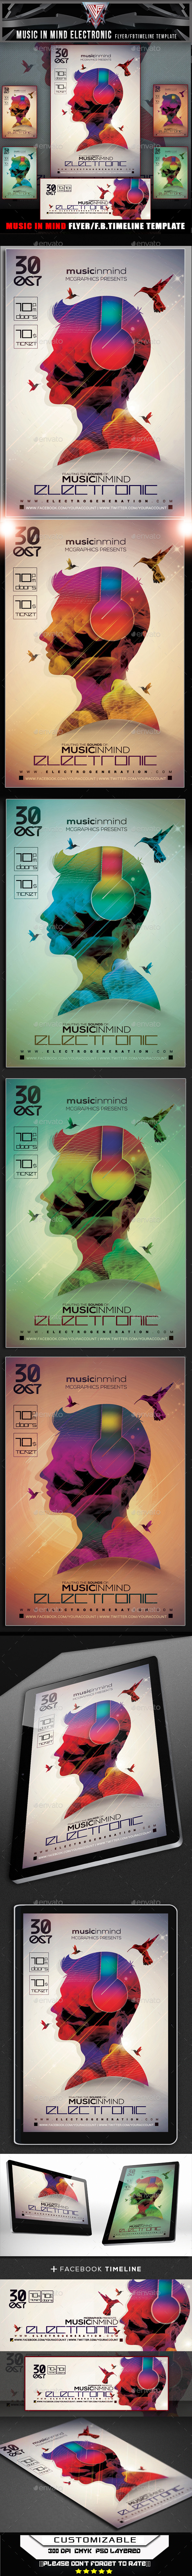 Music In Mind Electronic Flyer Template - Events Flyers